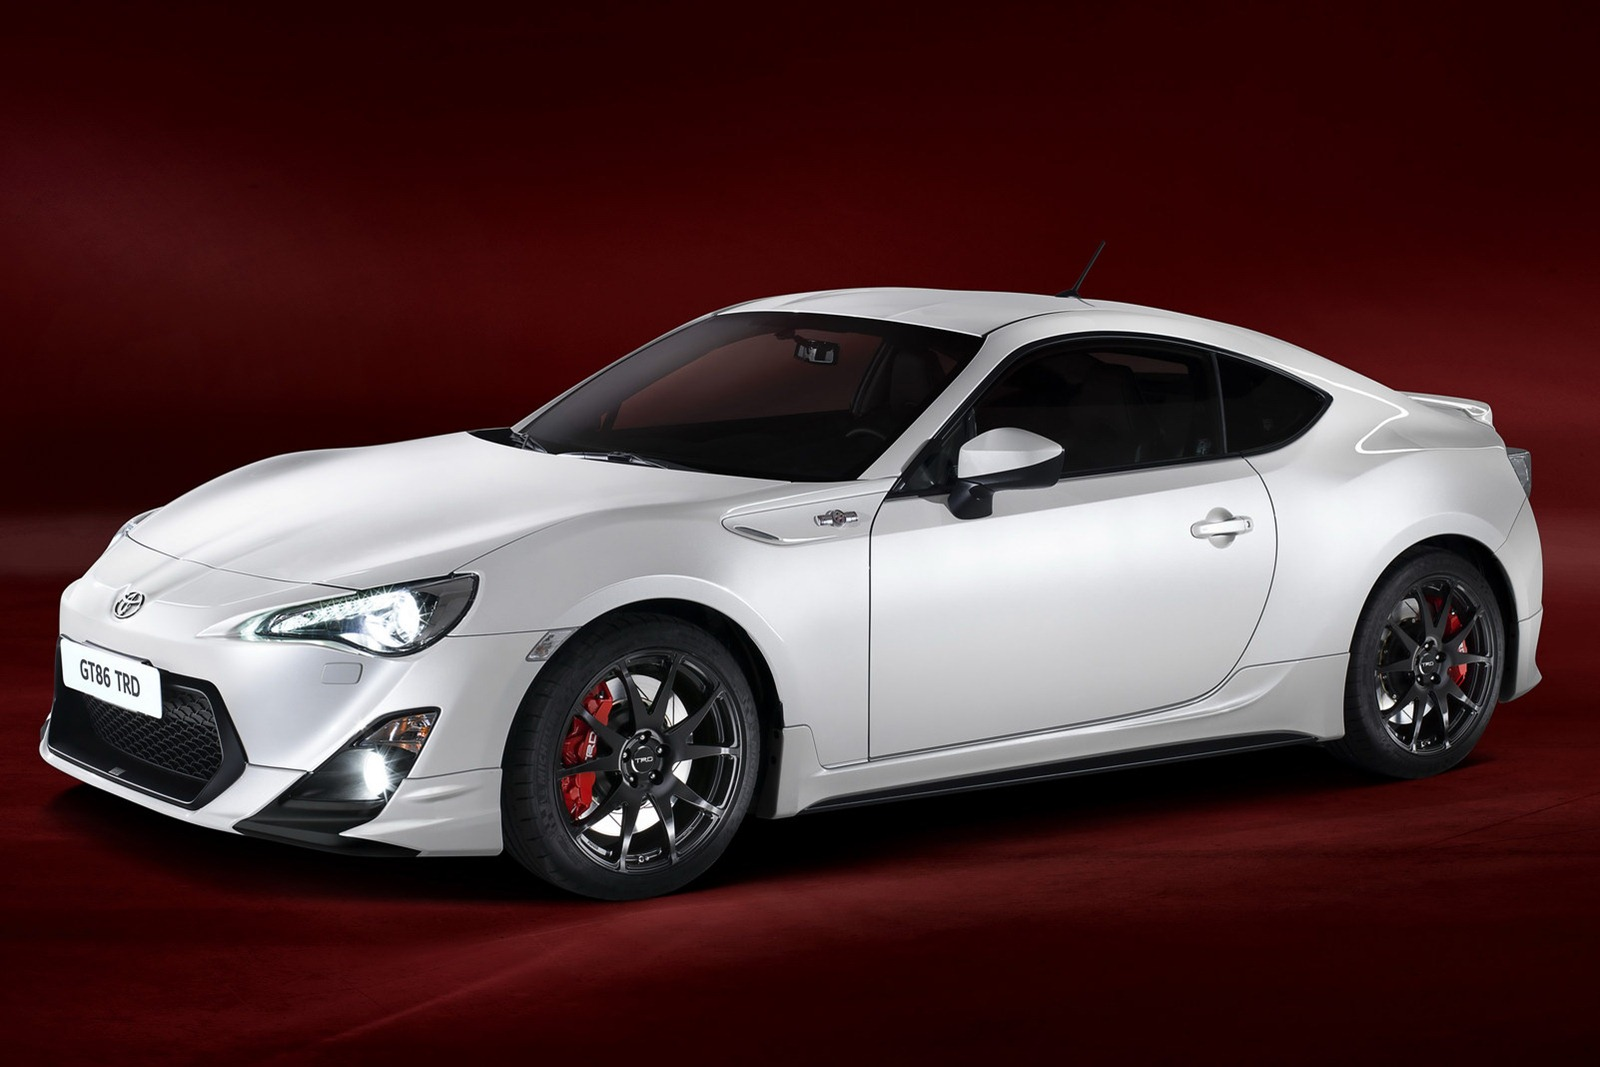 Trd Performance Line Accessories For The Toyota 86